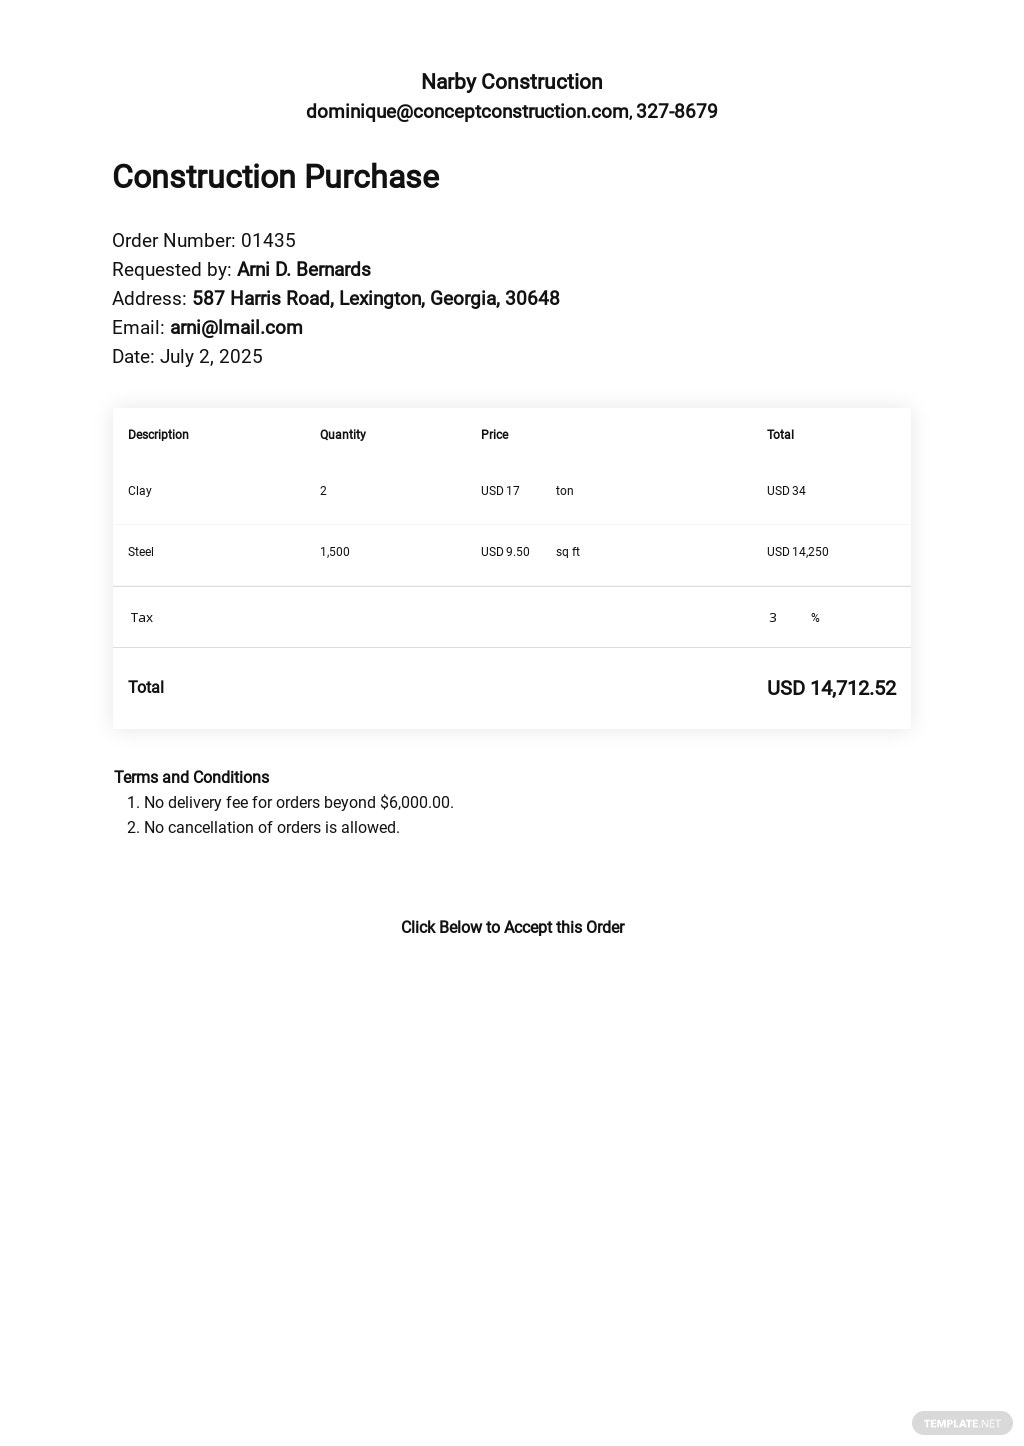 Editable Construction Purchase Template